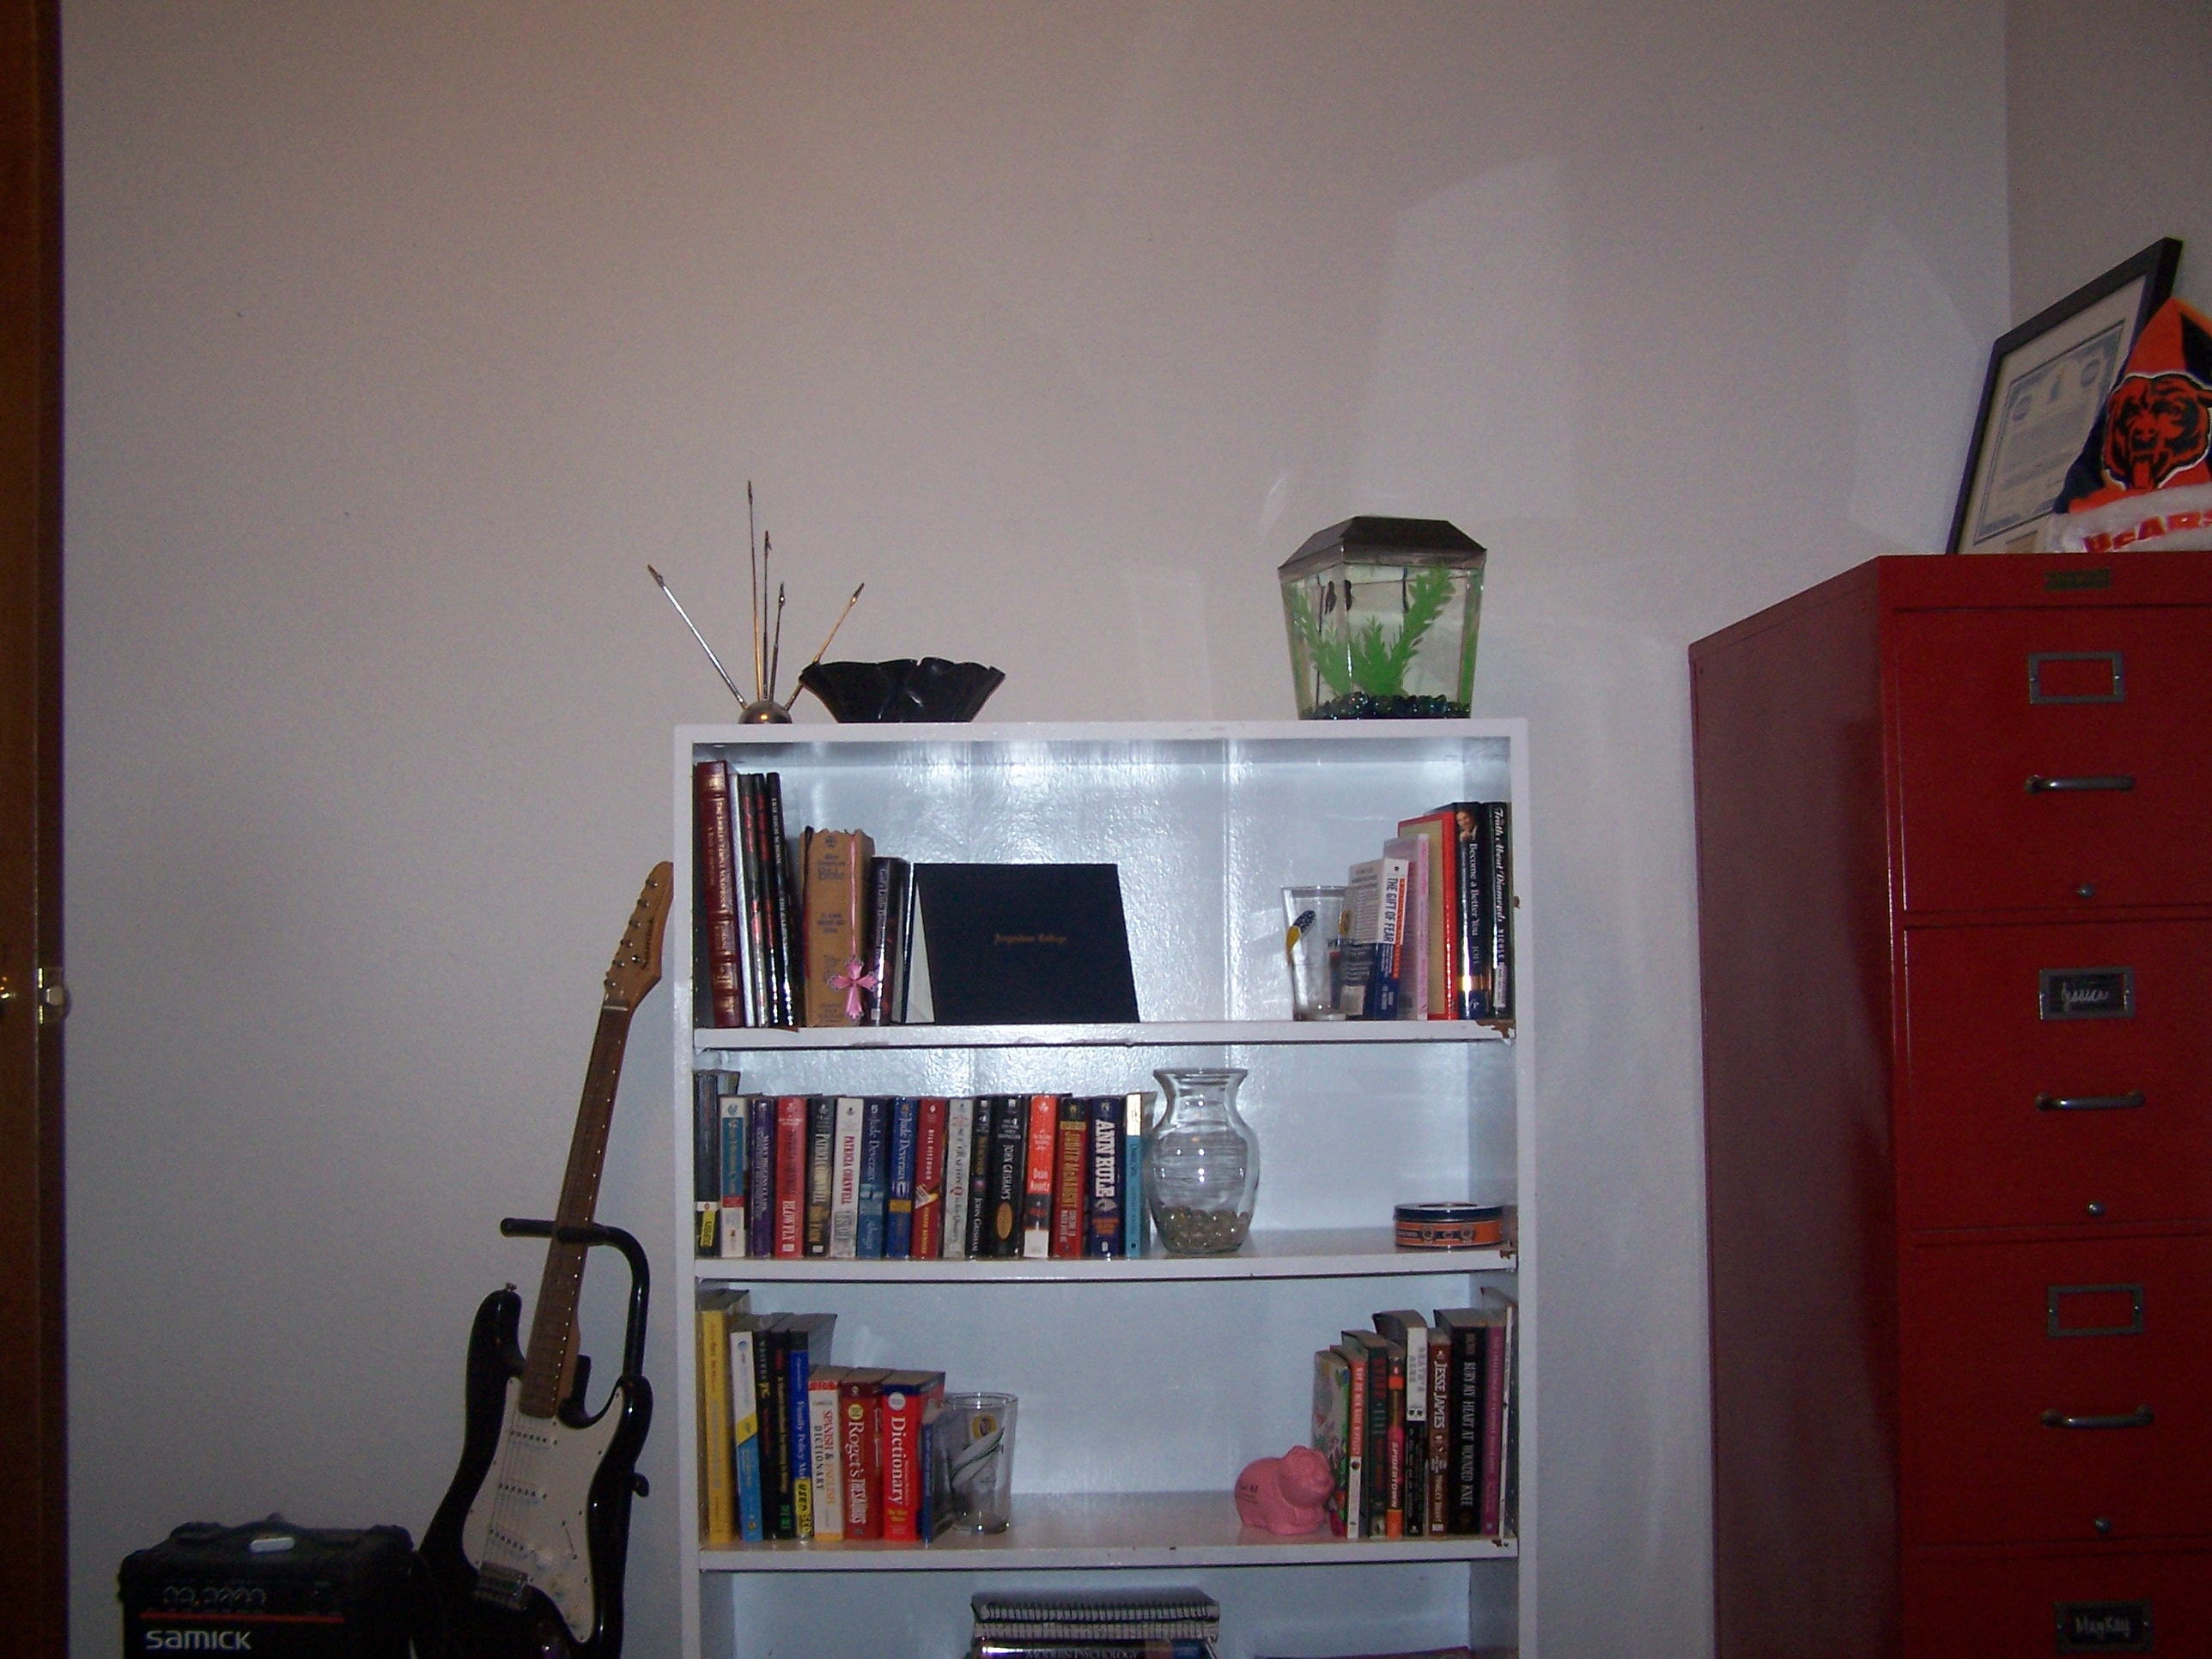 This is the wall that the futon faces. The bookshelf holds all of our school books. Above that is empty because it is for the projection screen. We have a large frame for the area, but it has yet to be hung. The file cabinet is an old Shaw-Walker that I painted bright red.